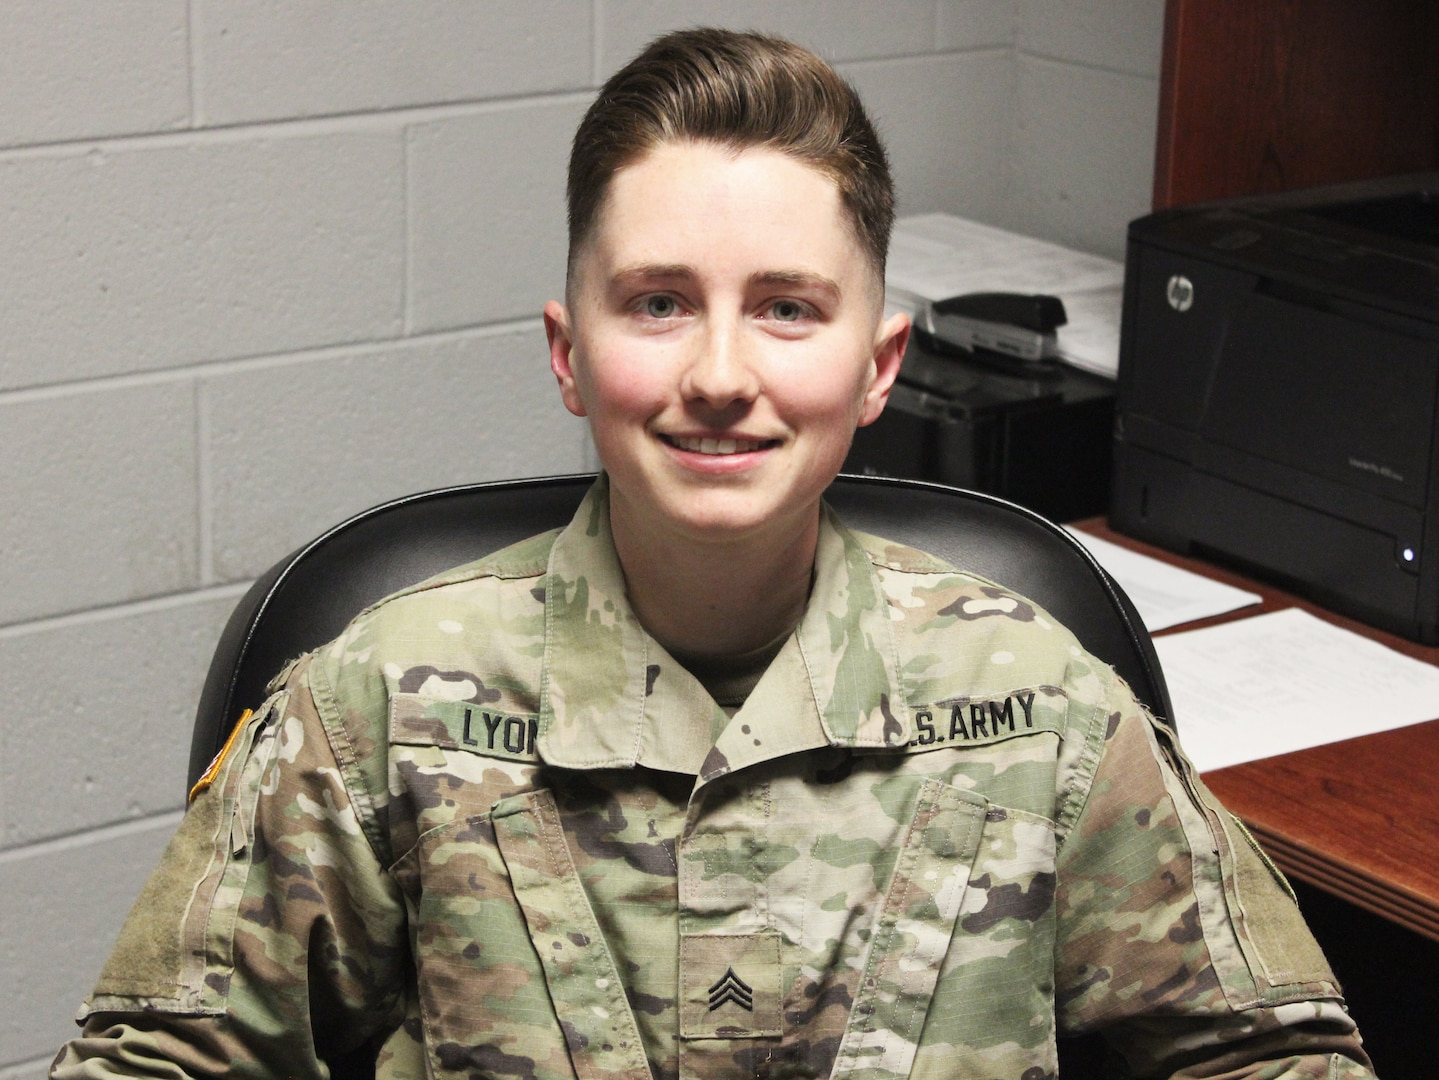 , Sgt. Cassandra Lyons, the supply sergeant for Alpha Company, 229th Brigade Engineer Battalion, 116th Infantry Brigade Combat Team, poses in her office March 2, 2021, in Fredericksburg, Virginia. (U.S. Army National Guard photo by Spc. Holden Russell)